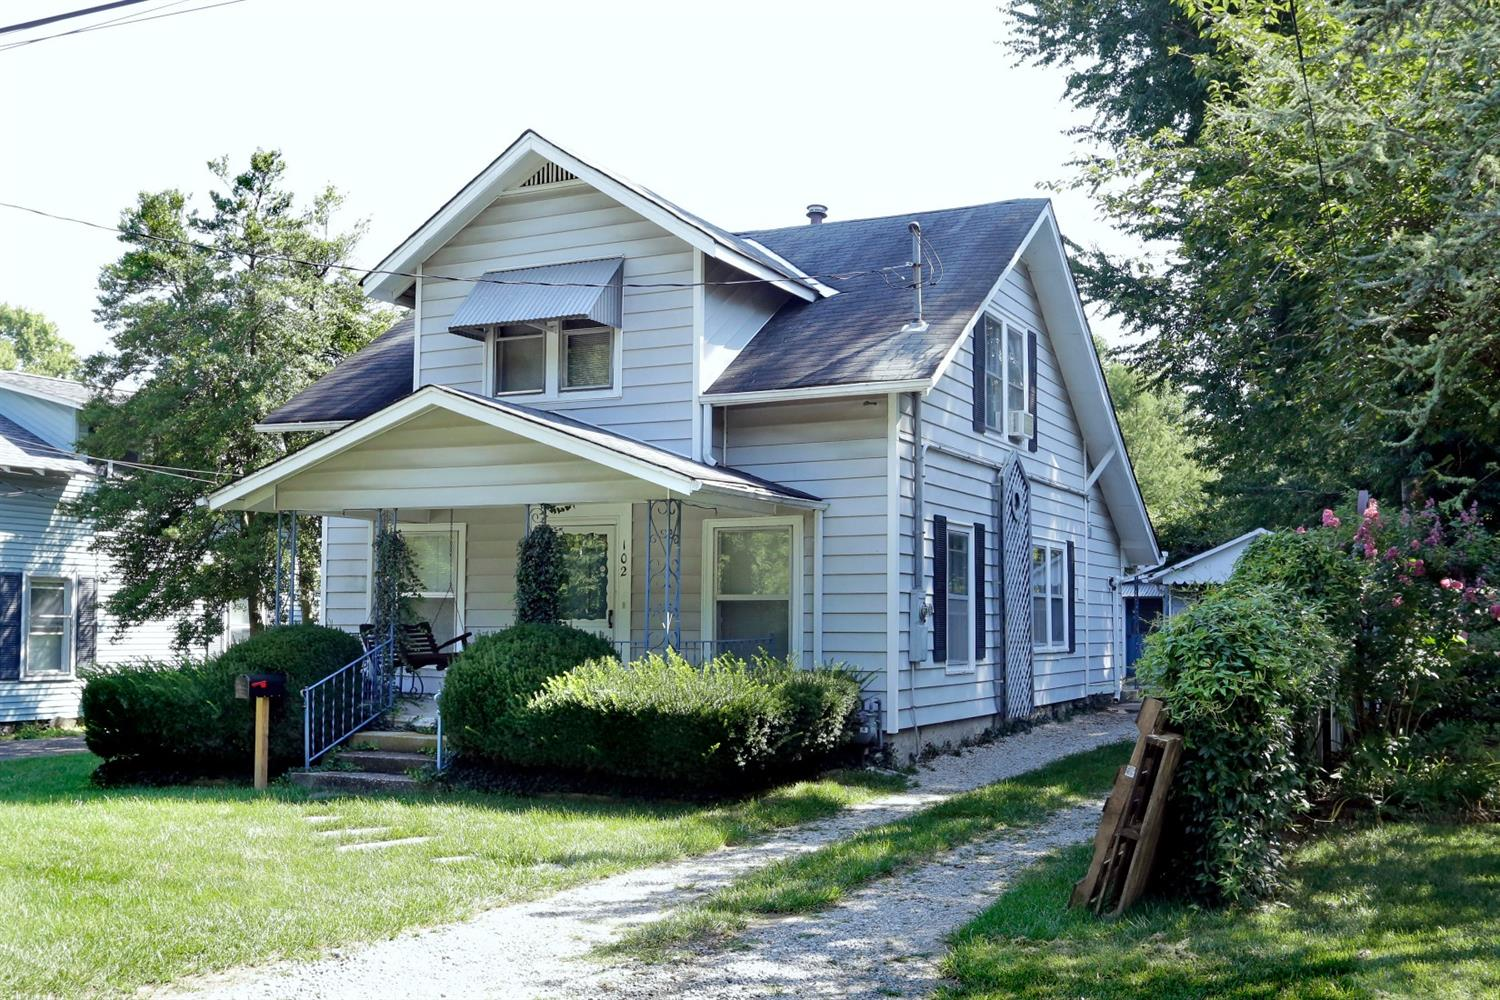 Charm%20and%20character%20in%20this%204Br%201.5%20story.%20Enjoy%20relaxing%20on%20the%20covered%20front%20porch.%20Spacious%20living%20room.%20First%20floor%20bedroom%20could%20be%20used%20as%20dining%20room.%20Efficient%20kitchen%20features%20gas%20range.%20Separate%20utility%20room.%20Loads%20of%20built-in%20storage.%201%20car%20garage%20with%20separate%20room%20that%20makes%20a%20perfect%20workshop%20or%20additional%20storage.%20Convenient%20location%20with%20easy%20access%20to%20downtown%20and%20New%20Circle%20Rd.%20Call%20today%20before%20this%20one%20is%20gone!